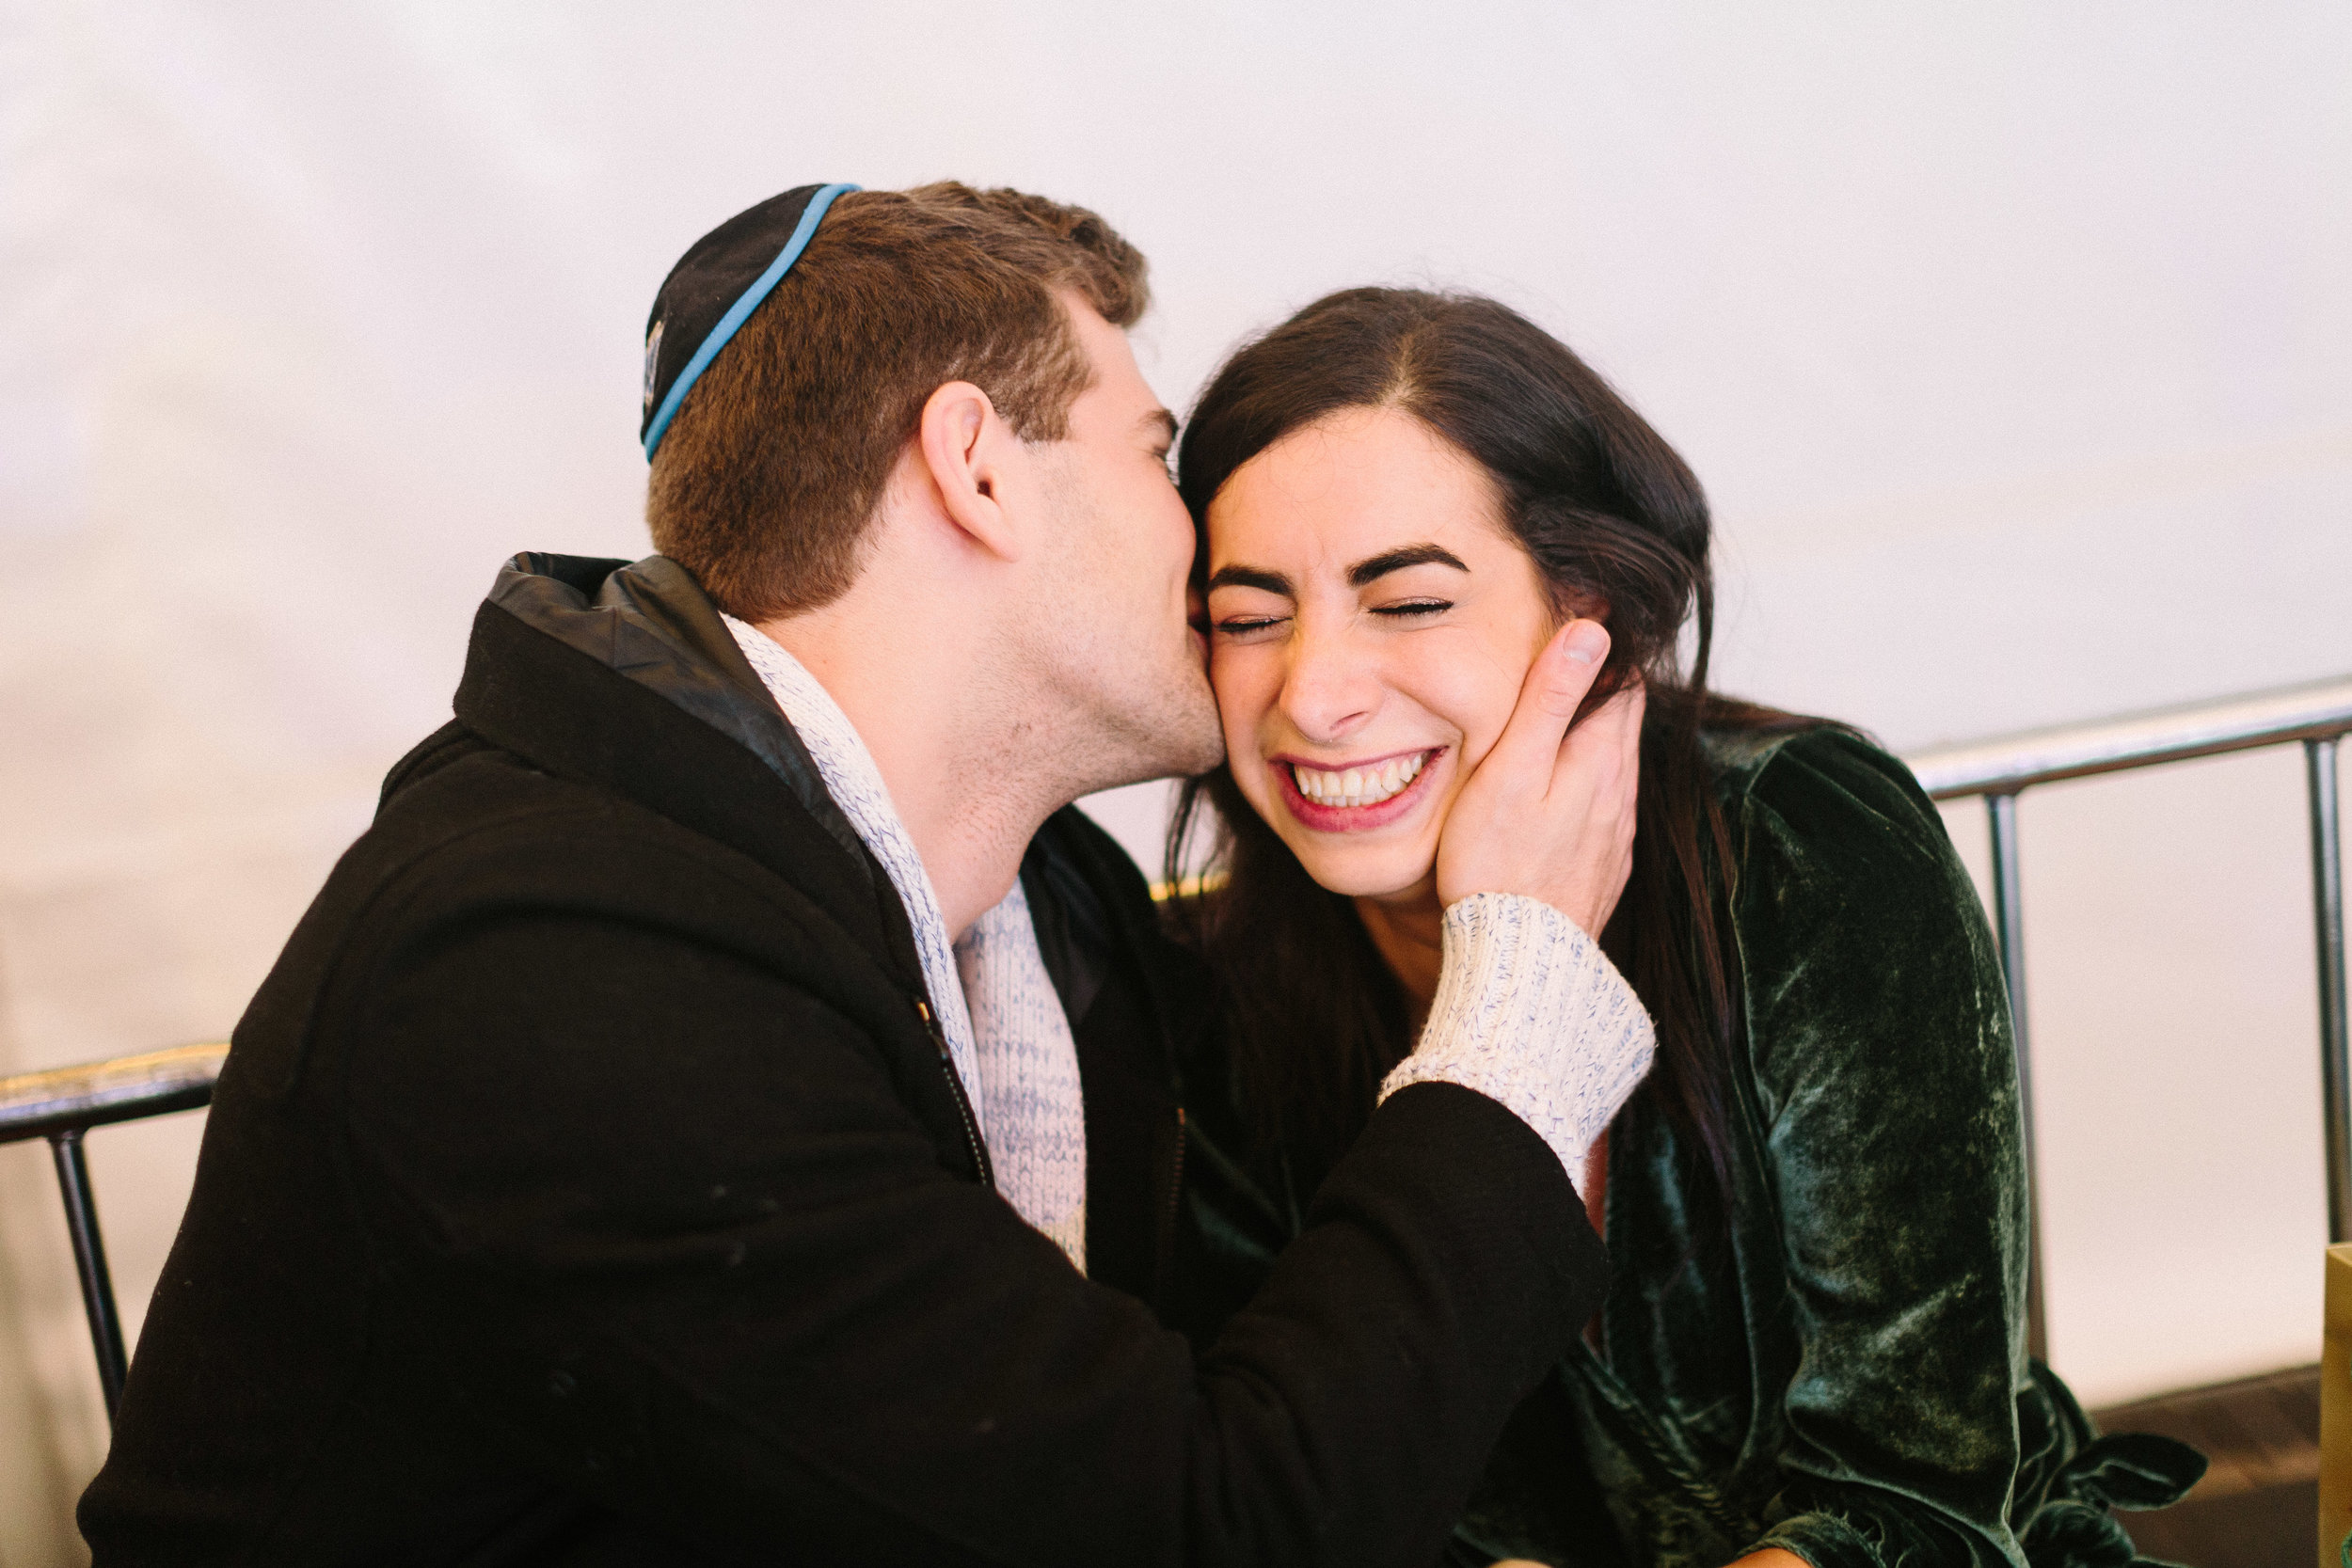 atlanta_proposal_photographer_ice_skating_rooftop_ponce_city_surprise_jewish_couple_1135.jpg